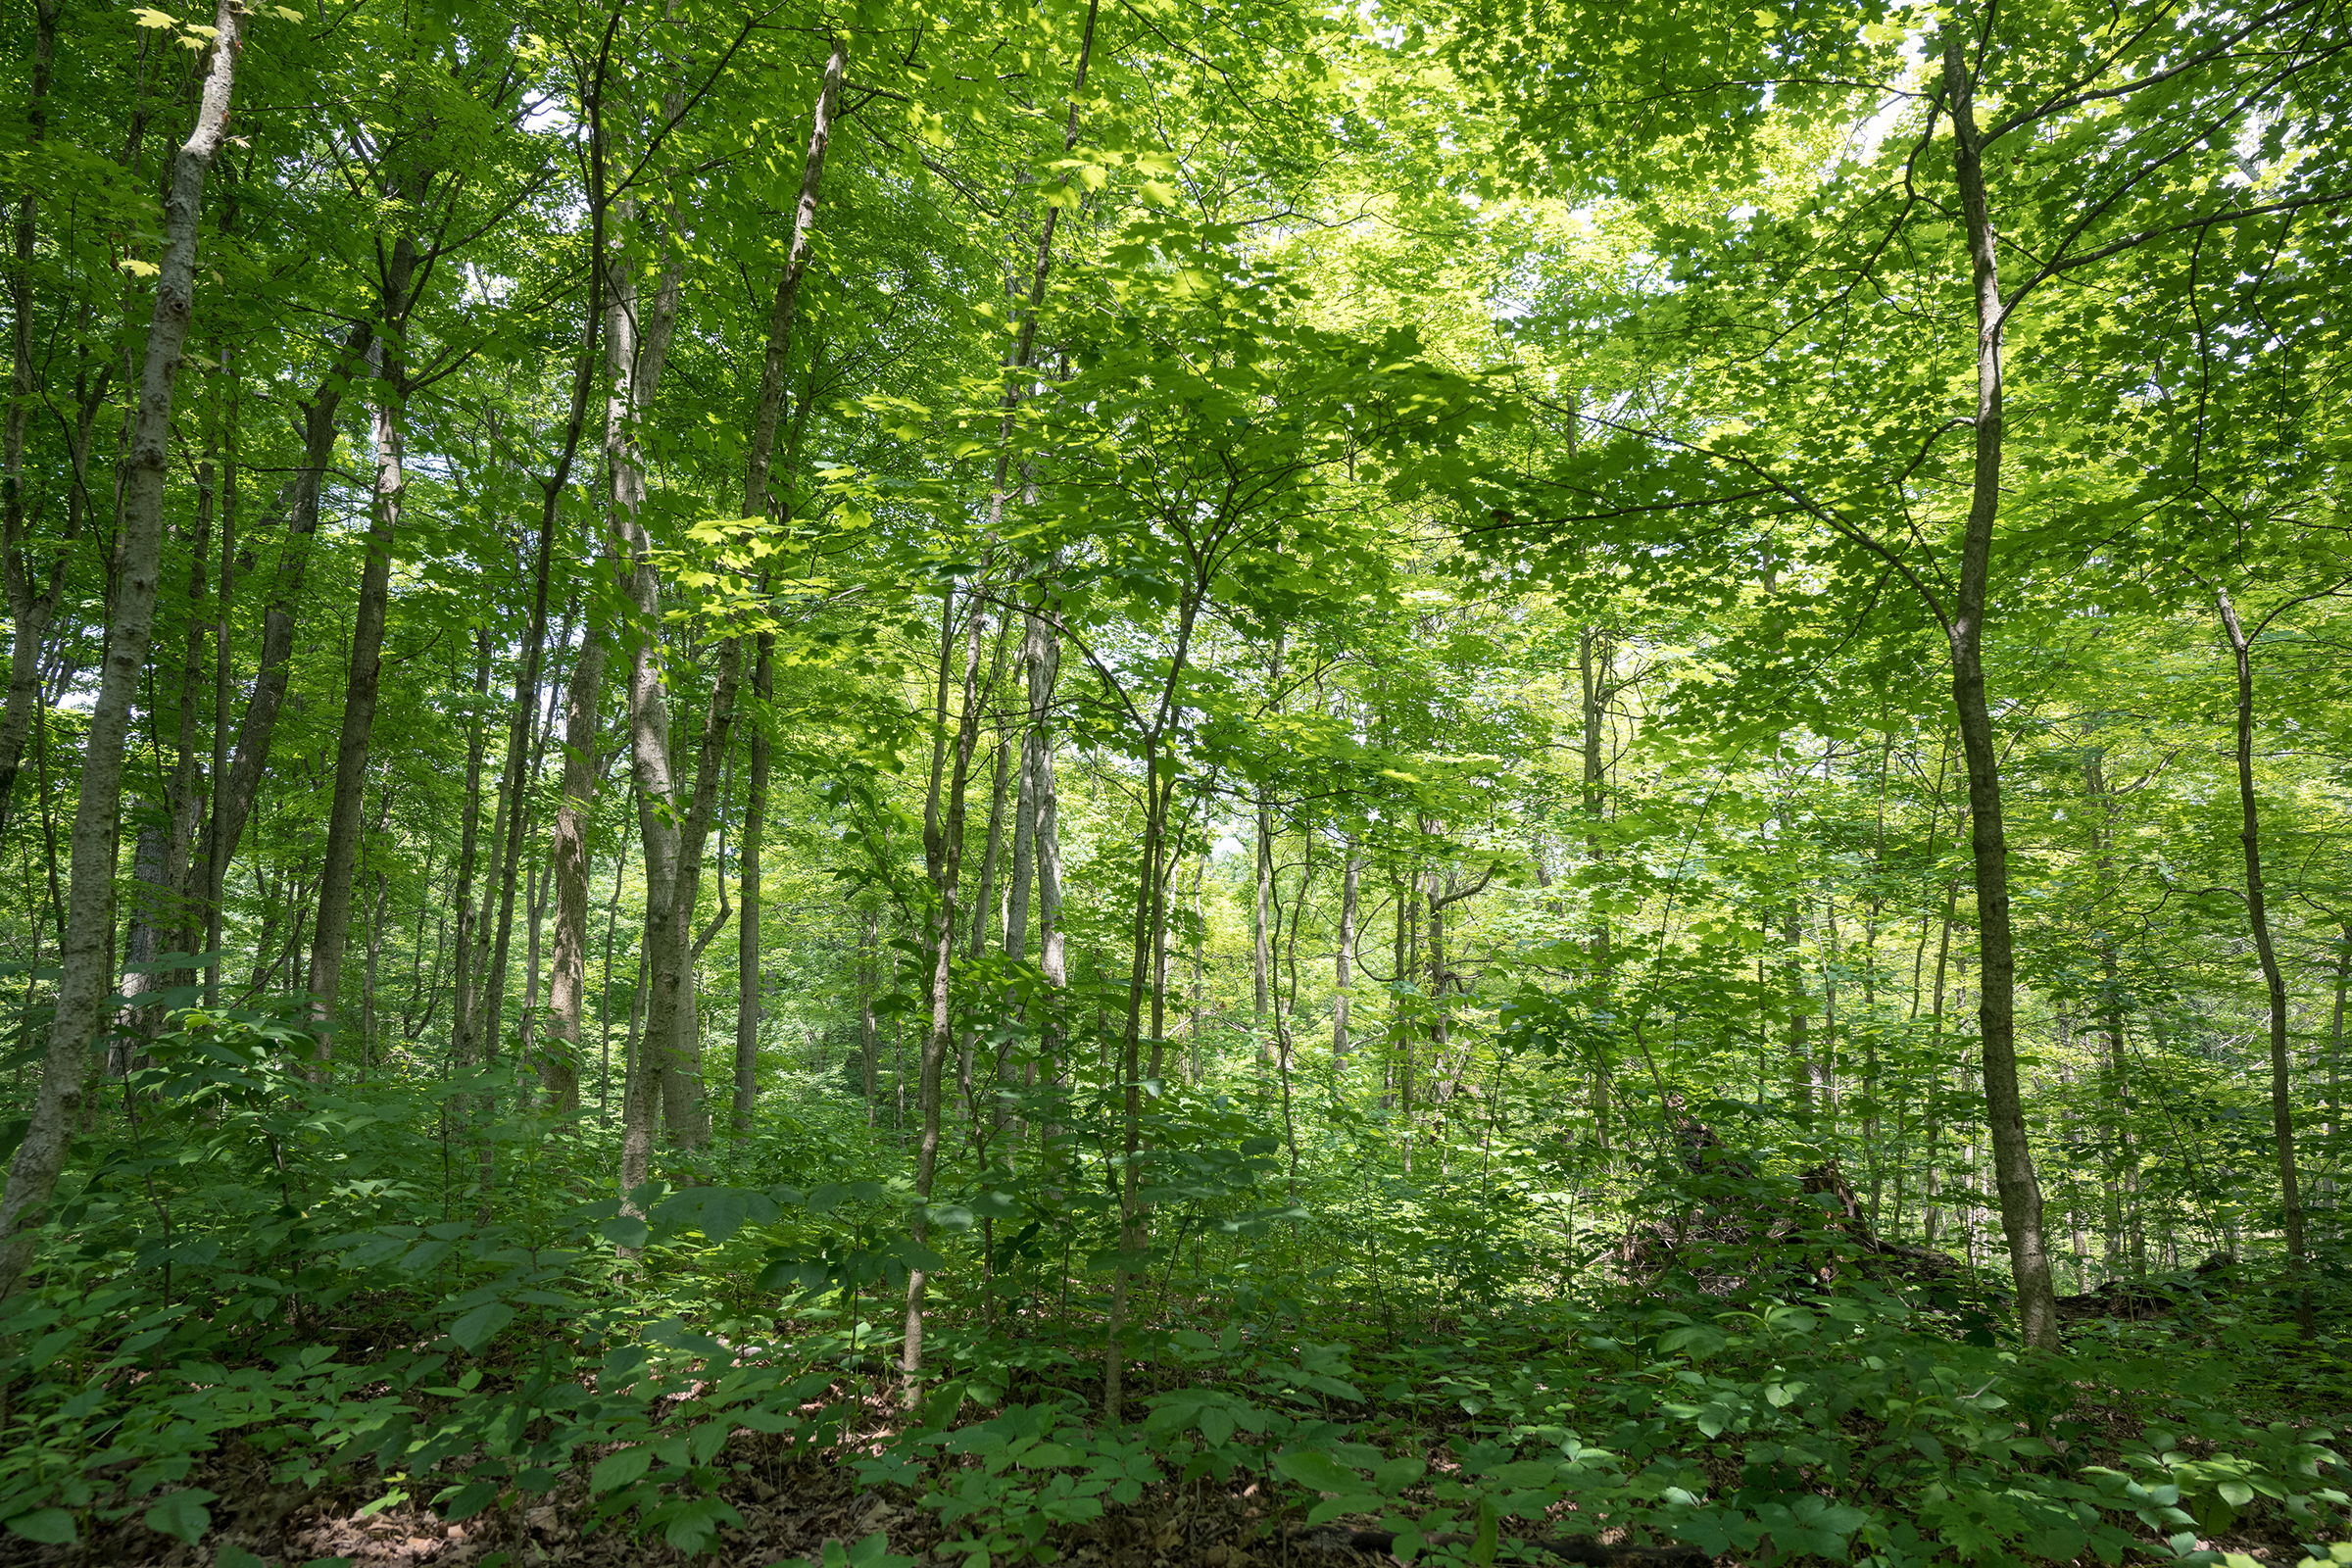 Deciduous forests just outside of Cincinnati, Ohio are filled with cicadas in June of 2021.